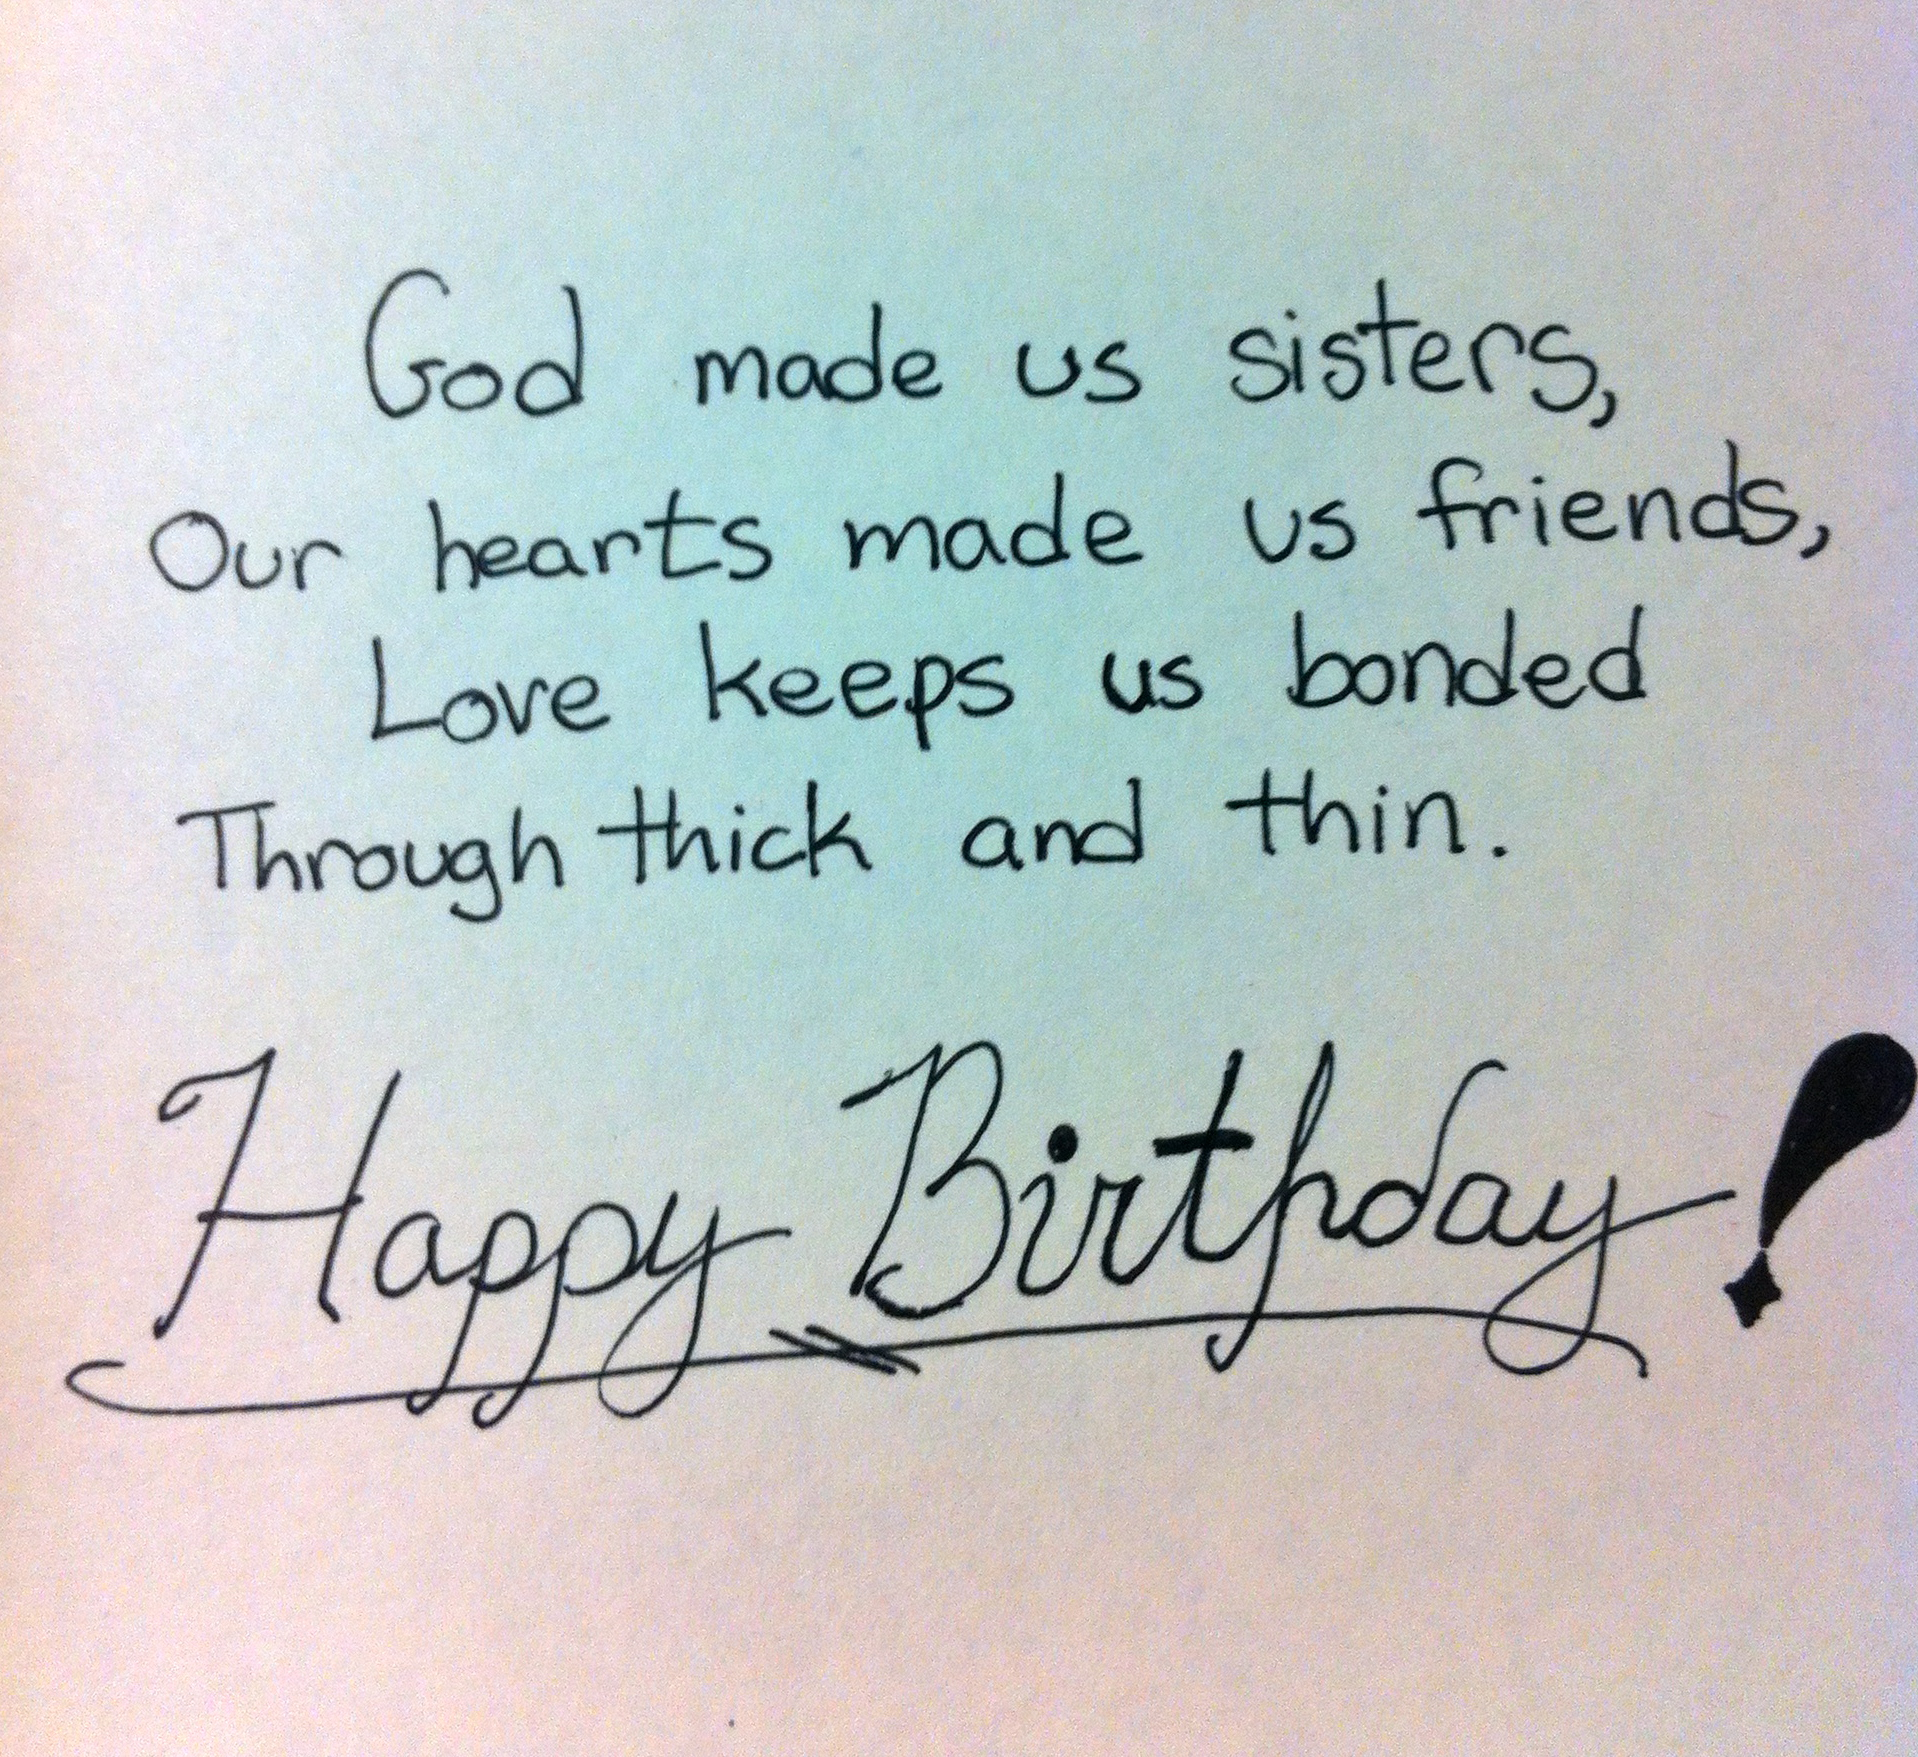 happy birthday sister image quotes ; 4e231f017a2b42eb9fea8654f8bd52de